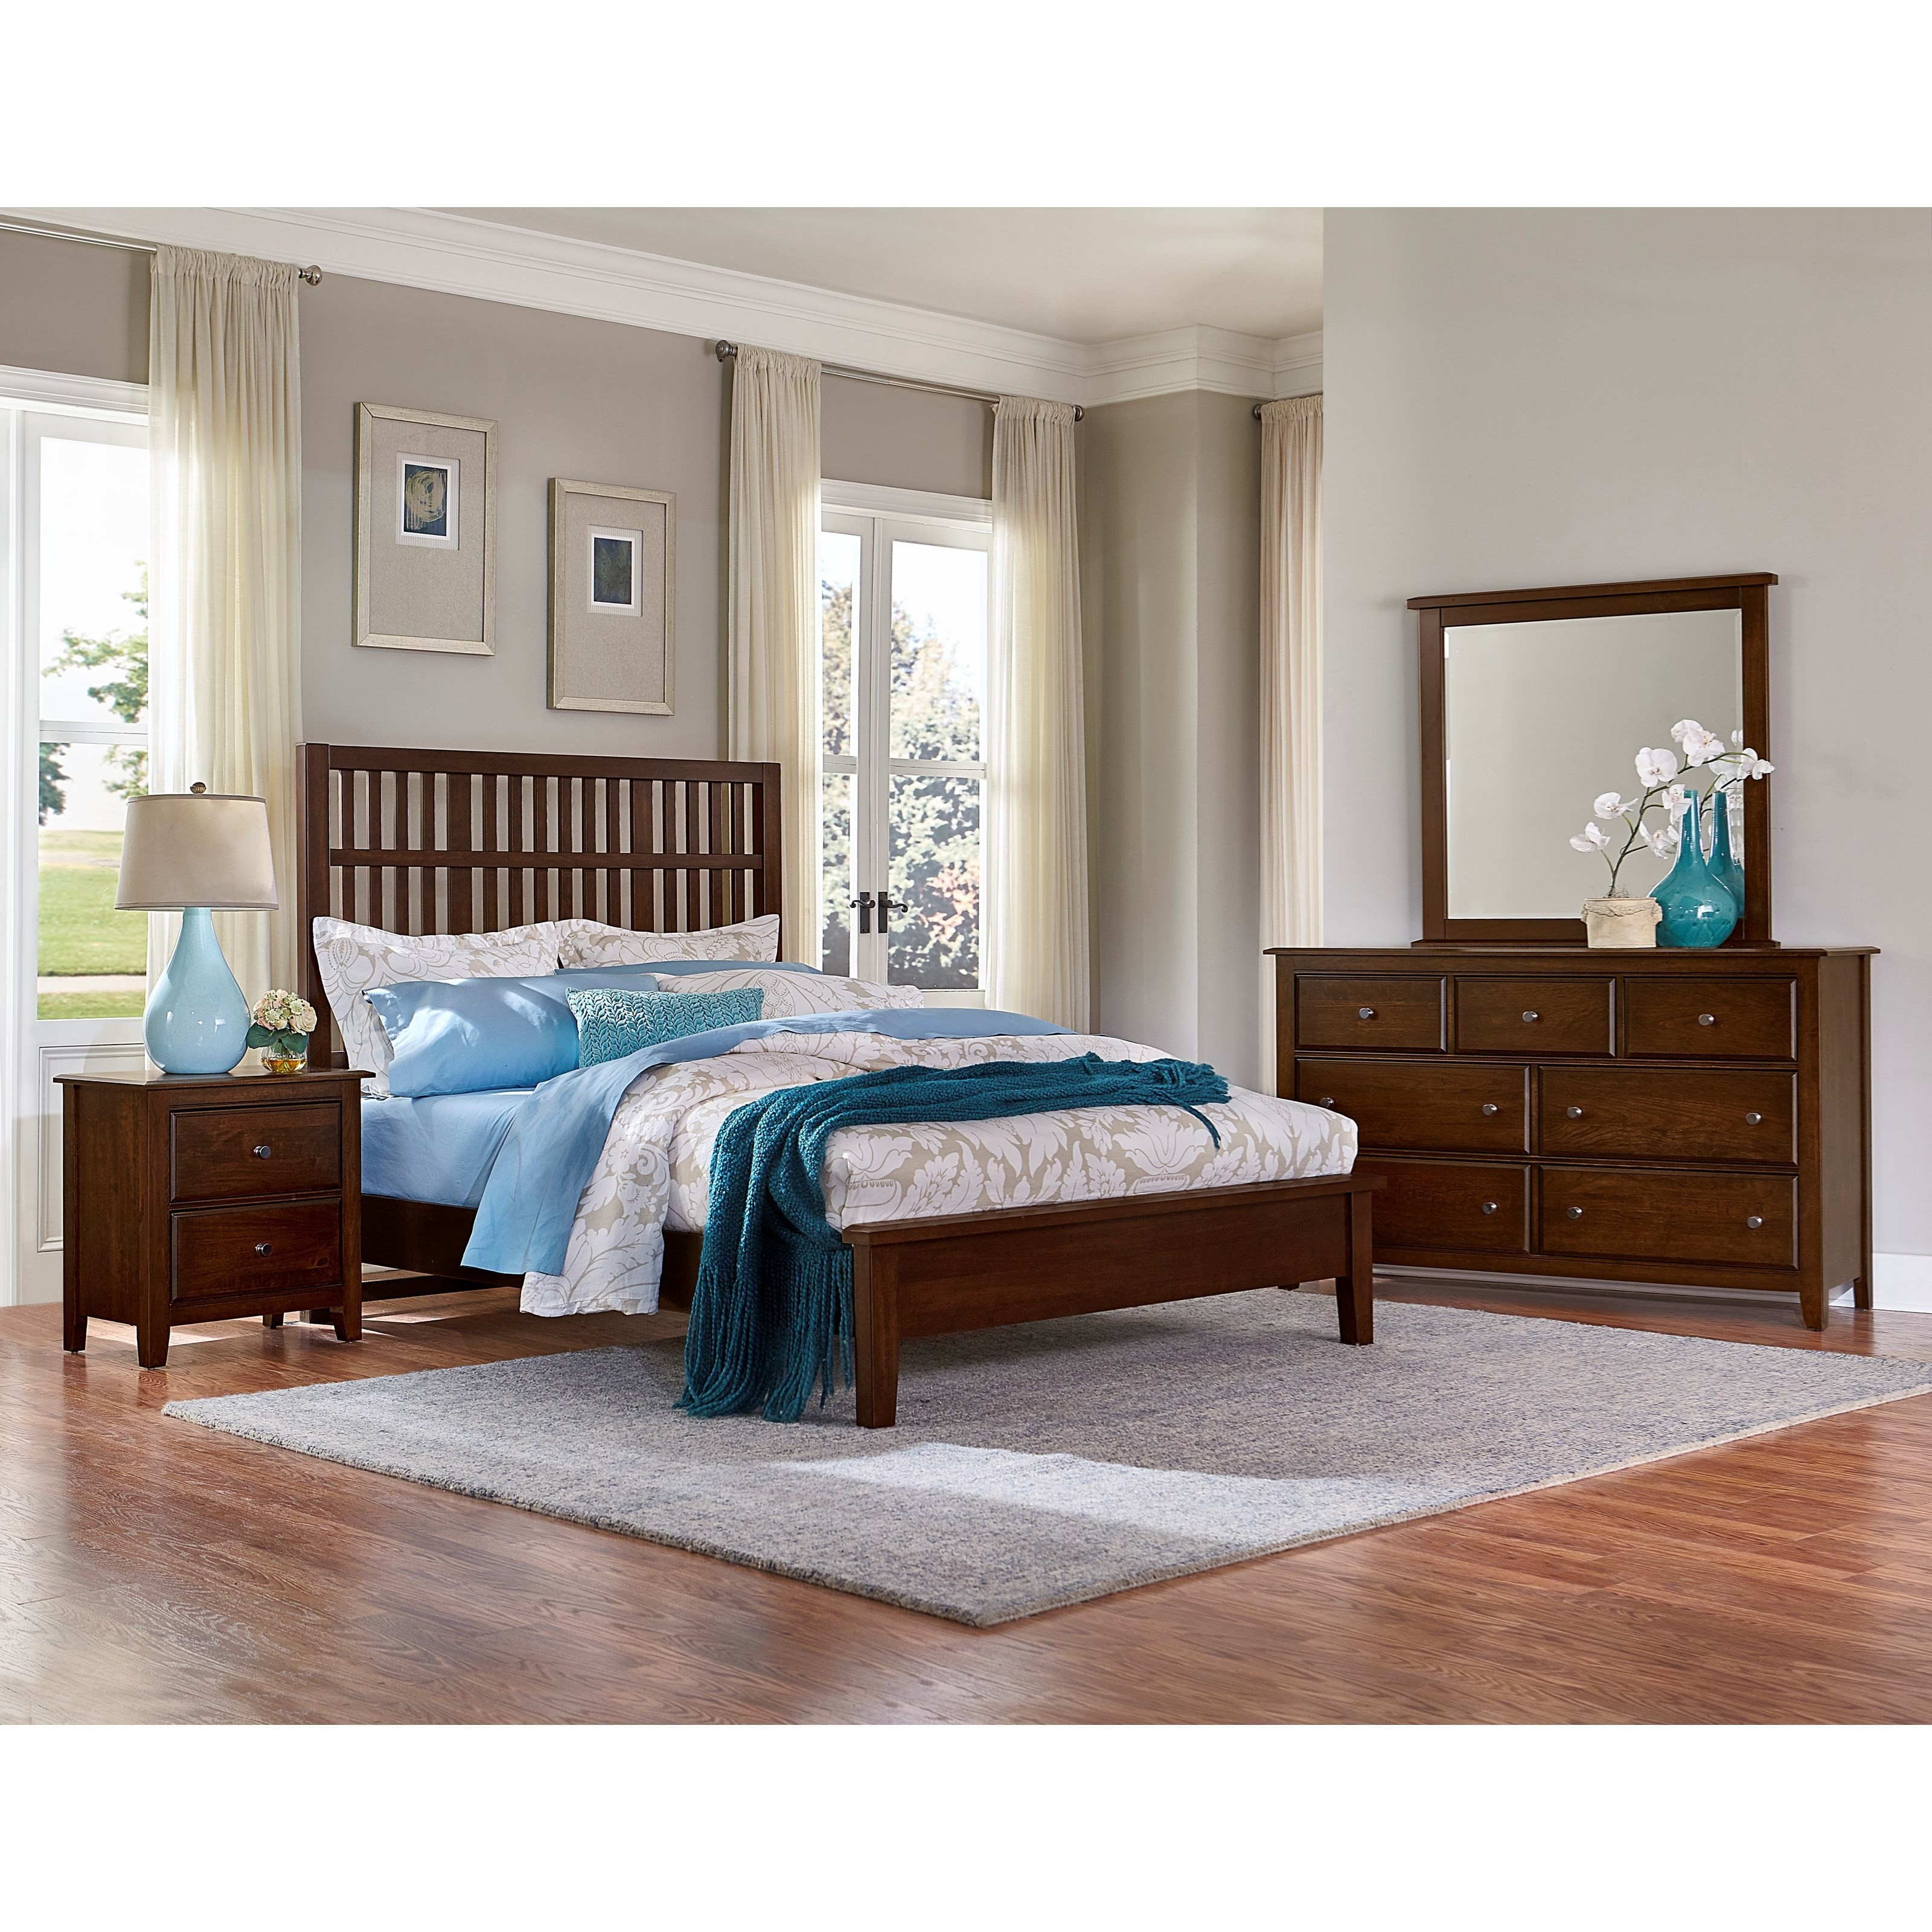 Artisan Choices Queen Bedroom Group by Virginia House at Virginia Furniture Market